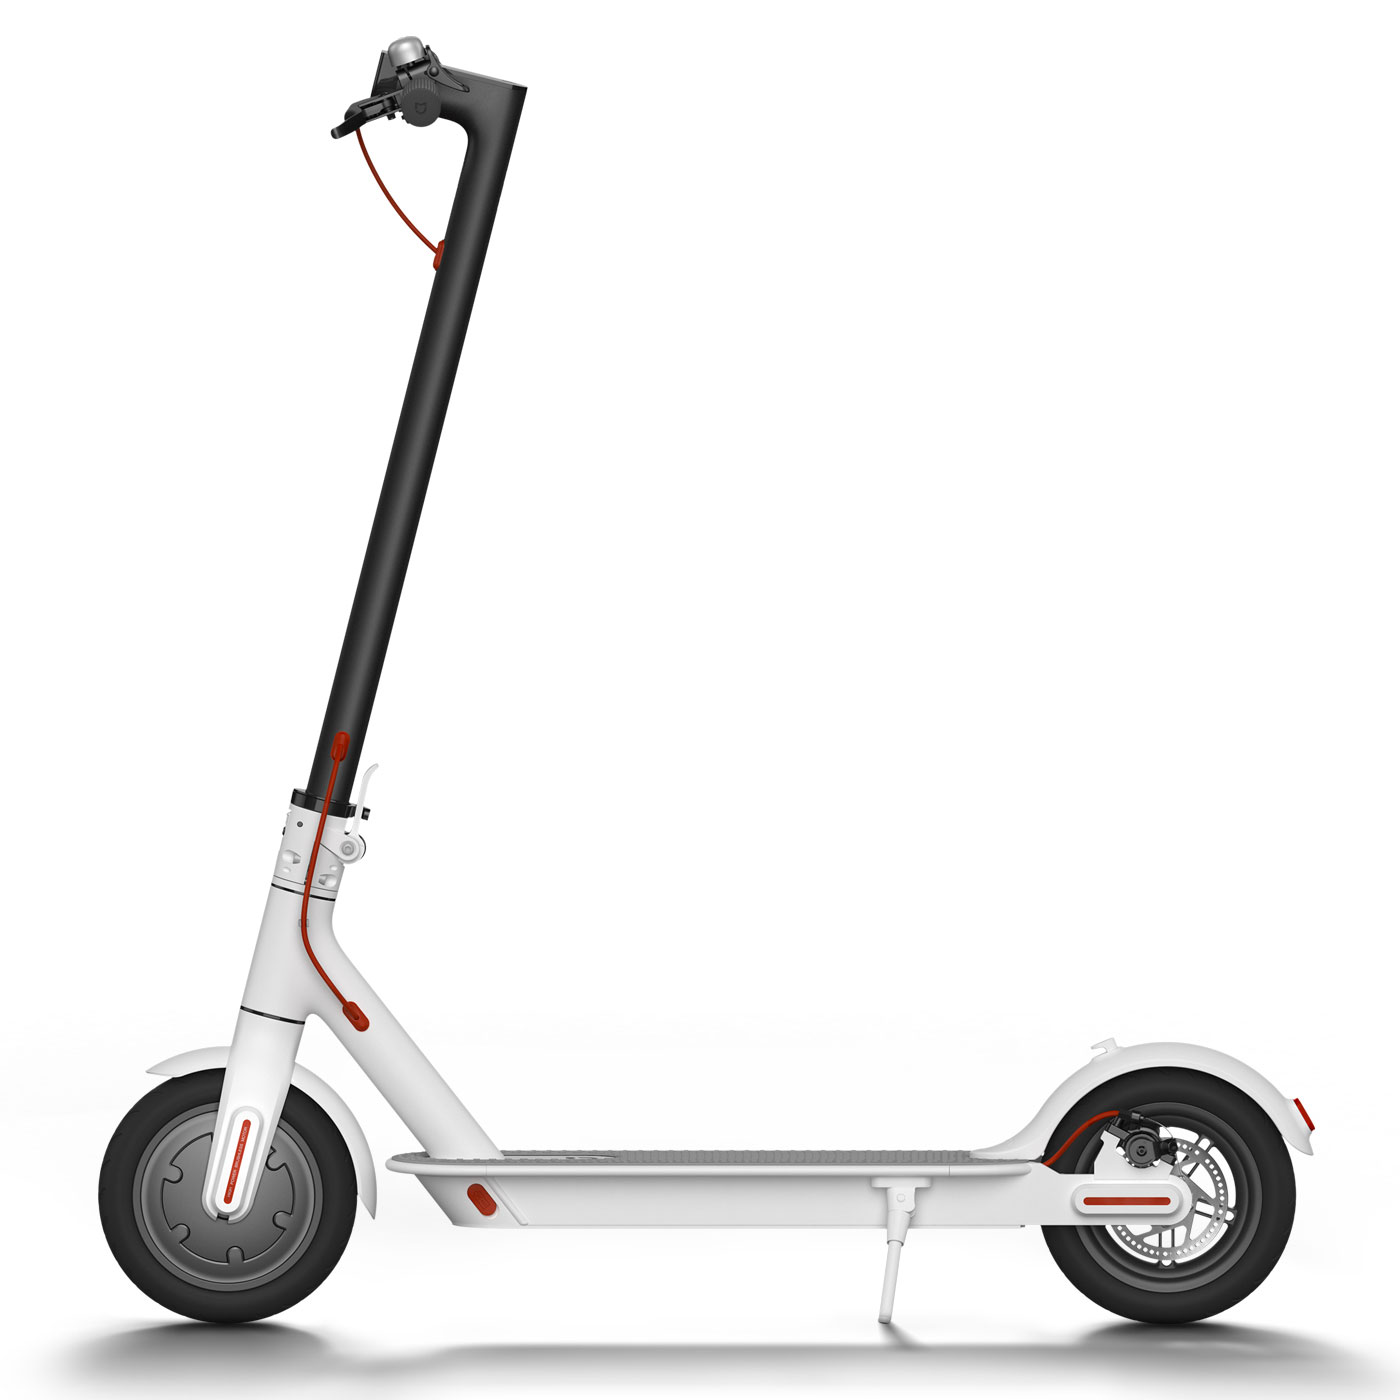 xiaomi mi electric scooter blanc m365 version europ enne gyropode xiaomi sur. Black Bedroom Furniture Sets. Home Design Ideas